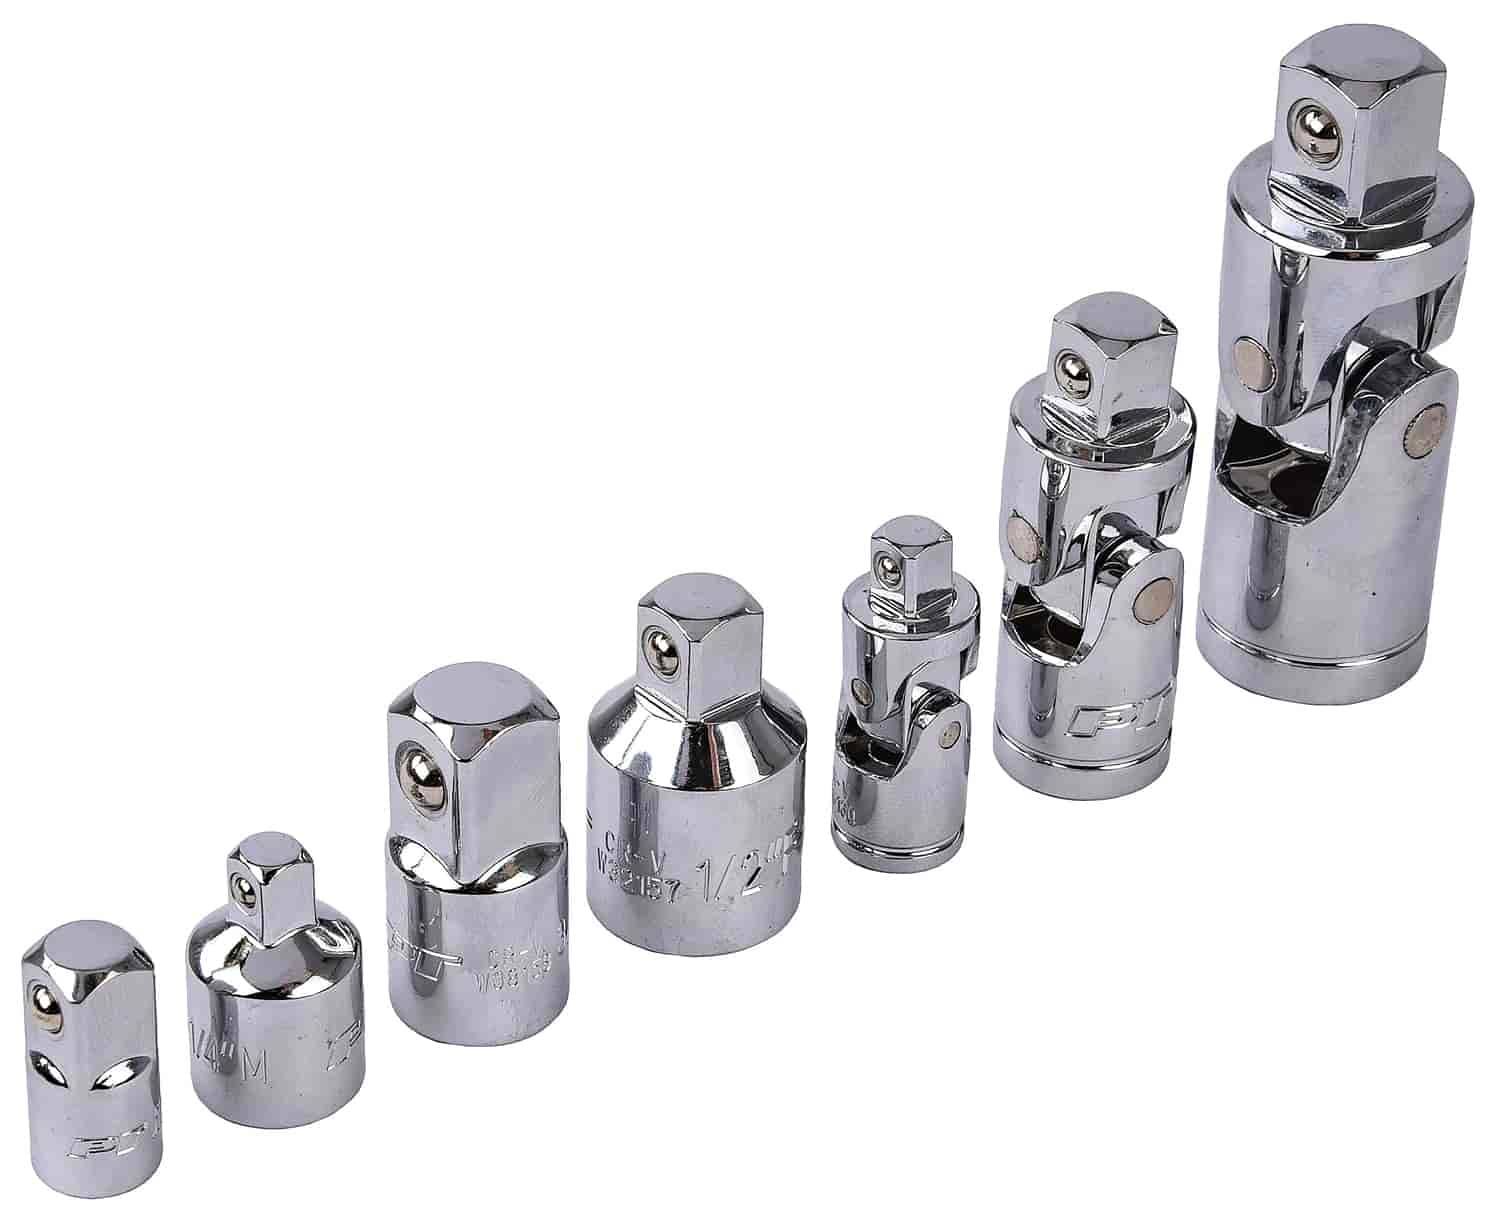 7pc Performance Products Socket Adapter /& U-Joint Set New